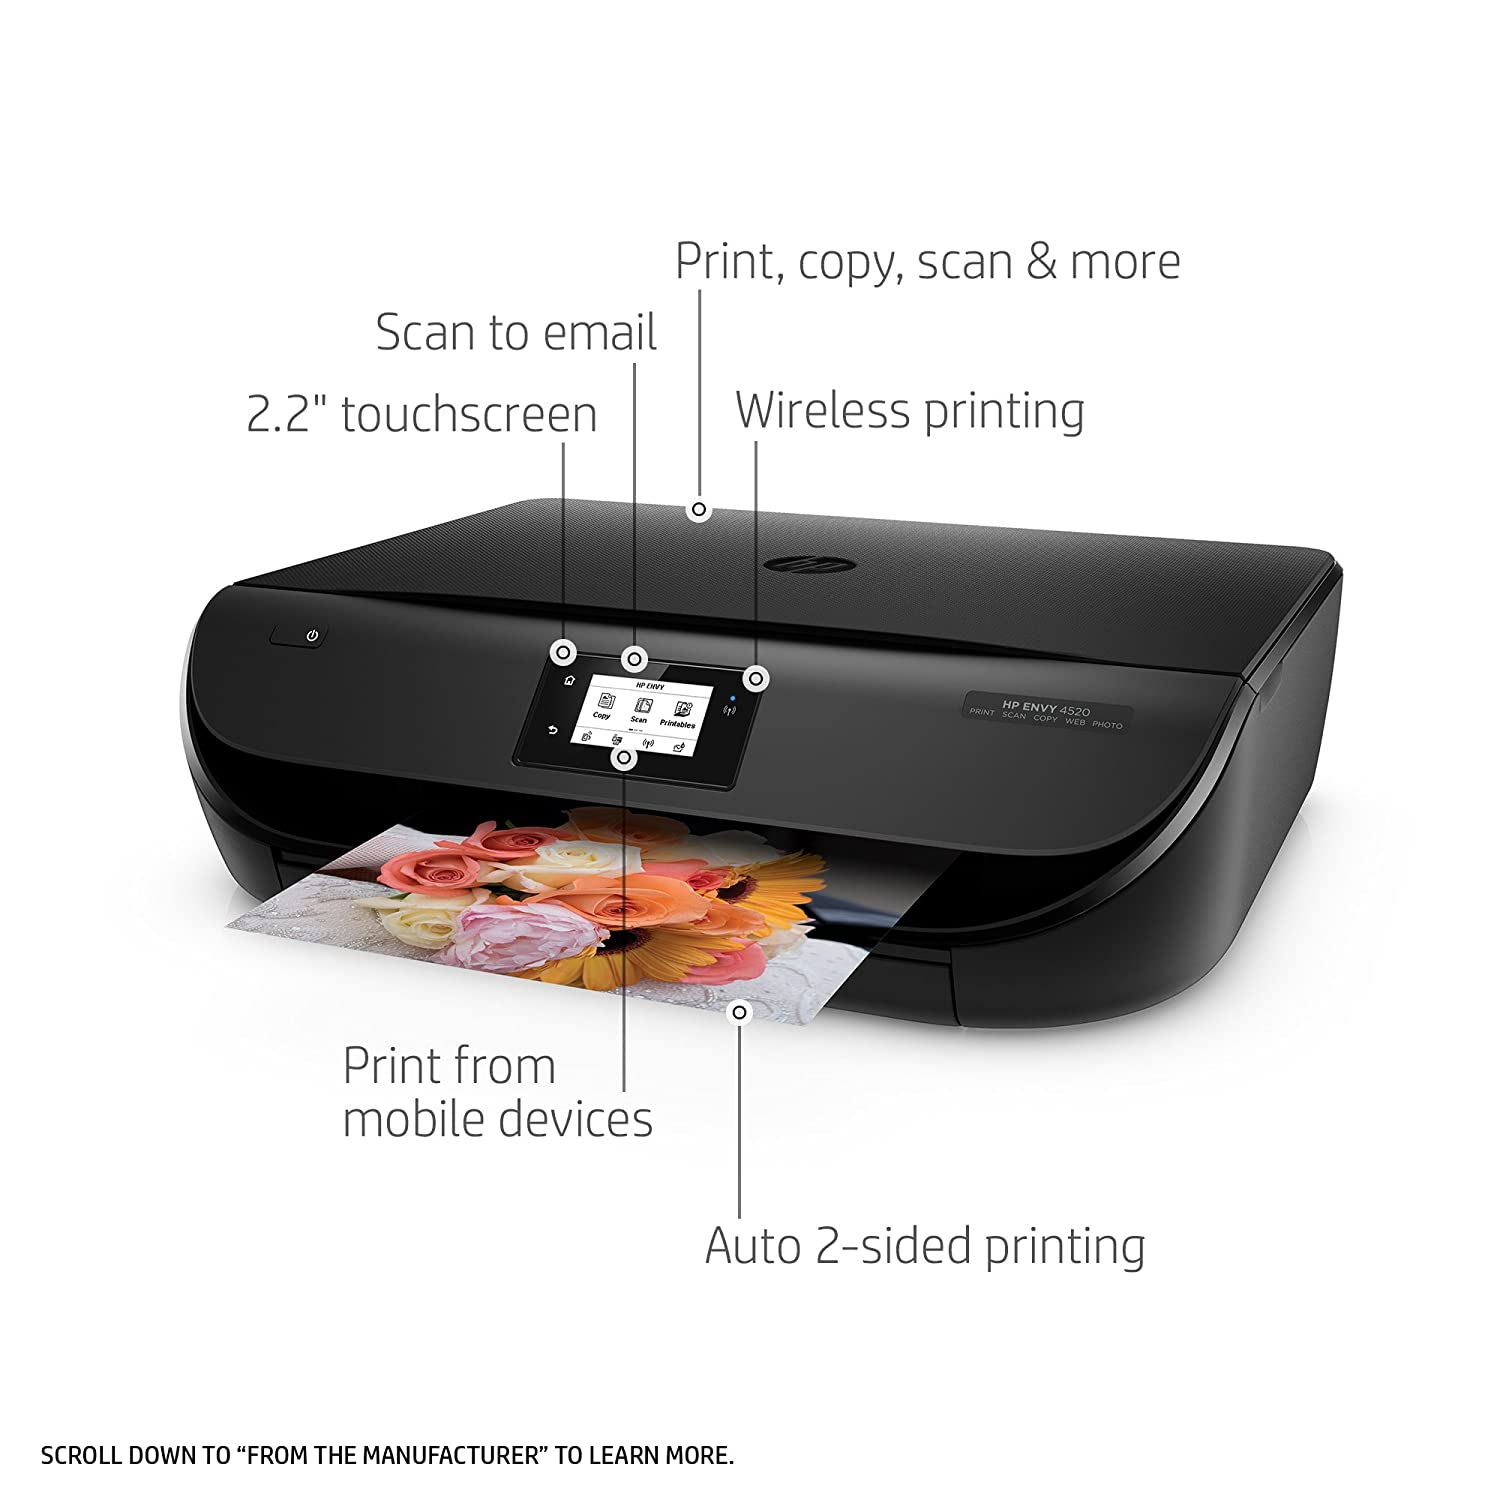 Amazon HP Envy 4520 Wireless Color Printer with Scanner and Copier with Ink Bundle Electronics